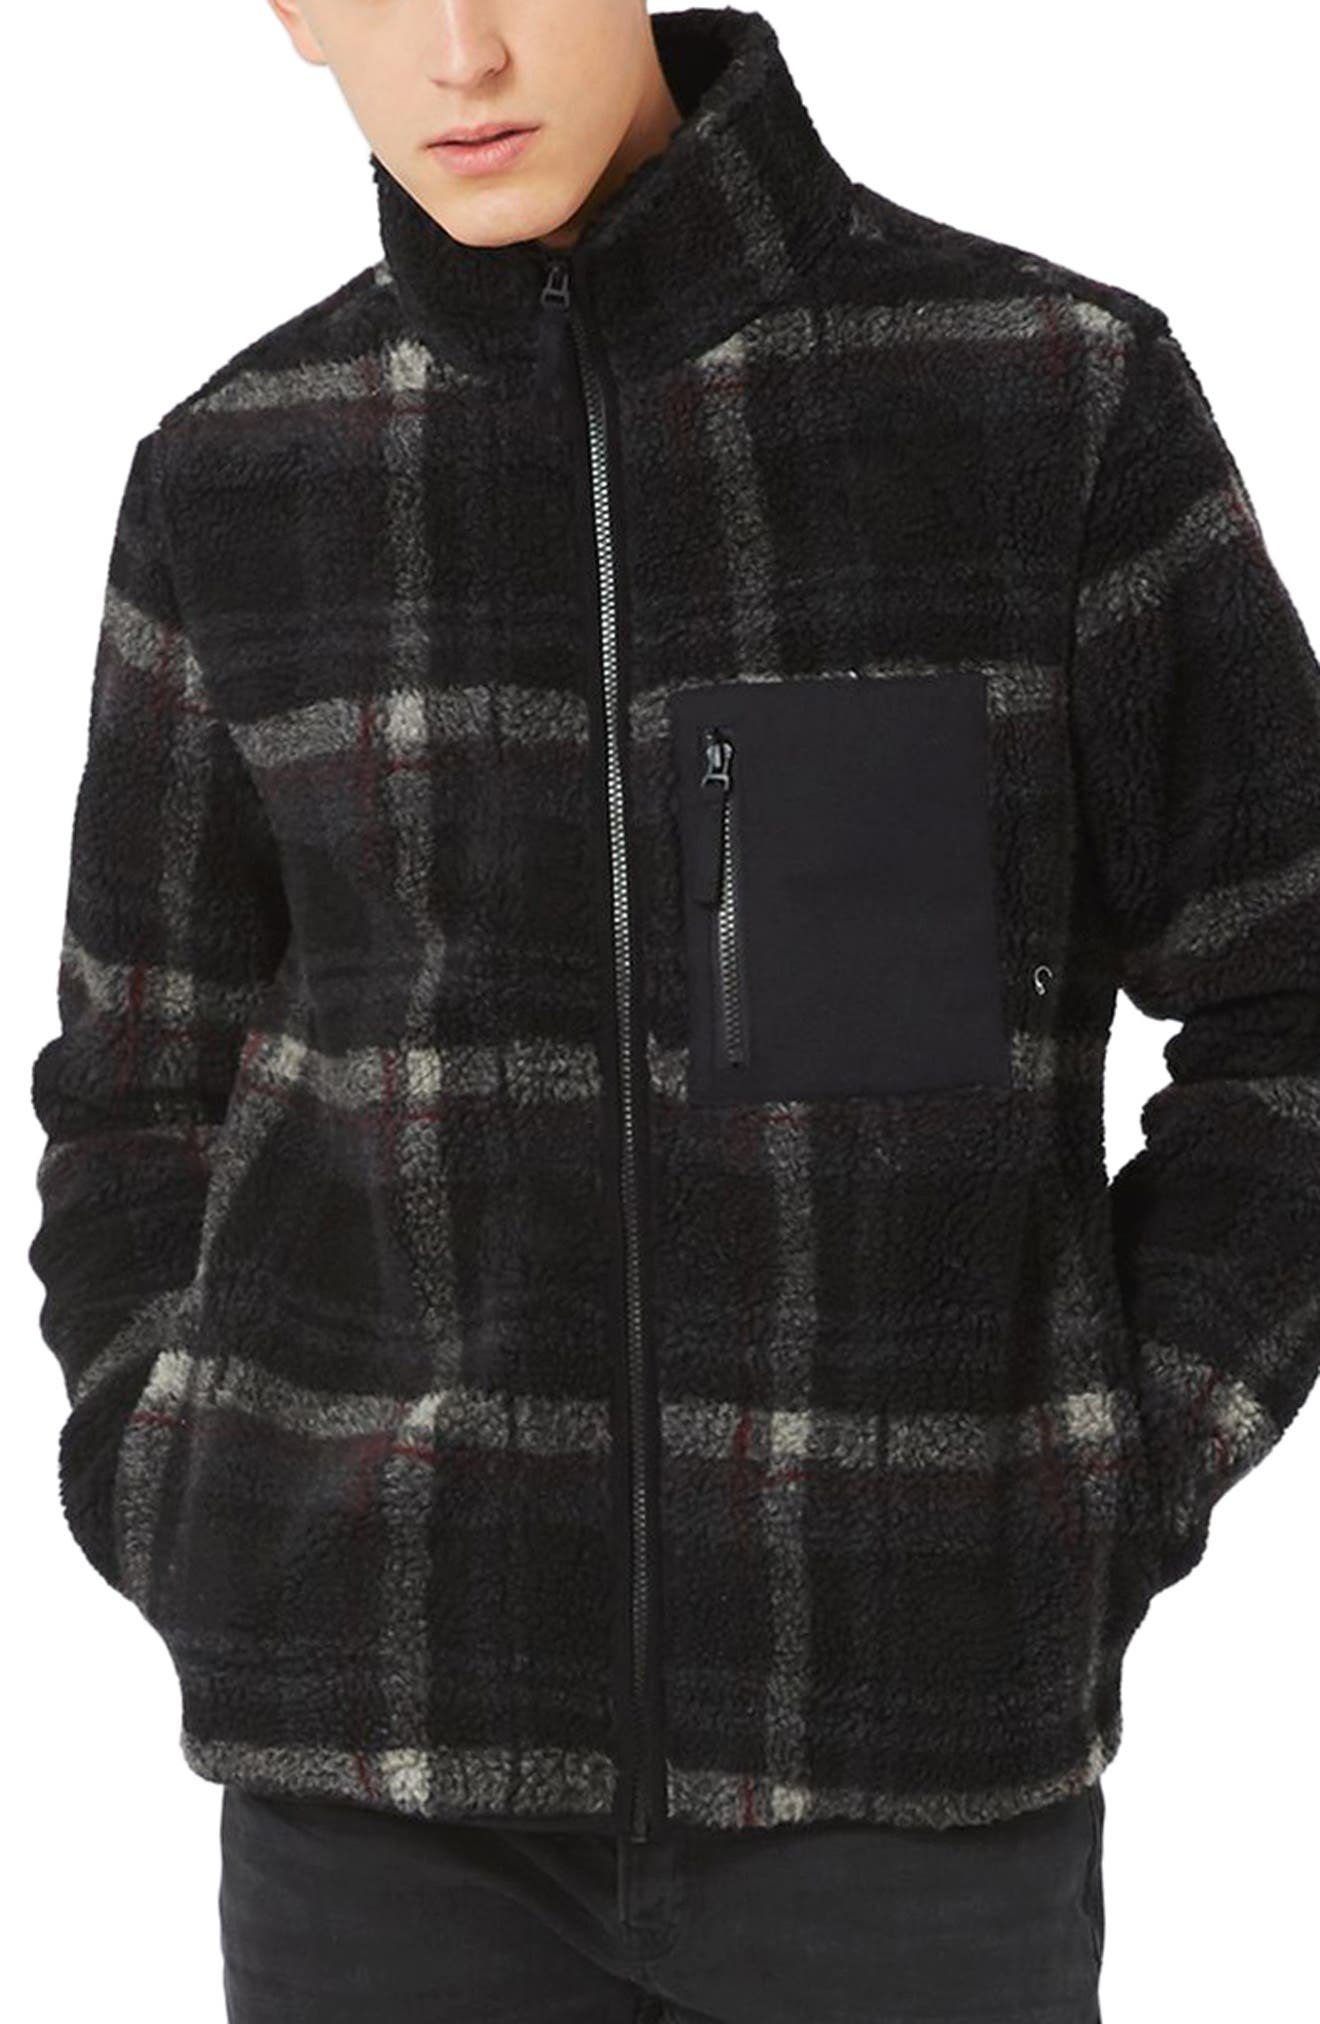 Alternate Image 1 Selected - Topman Check Borg Zip Front Jacket